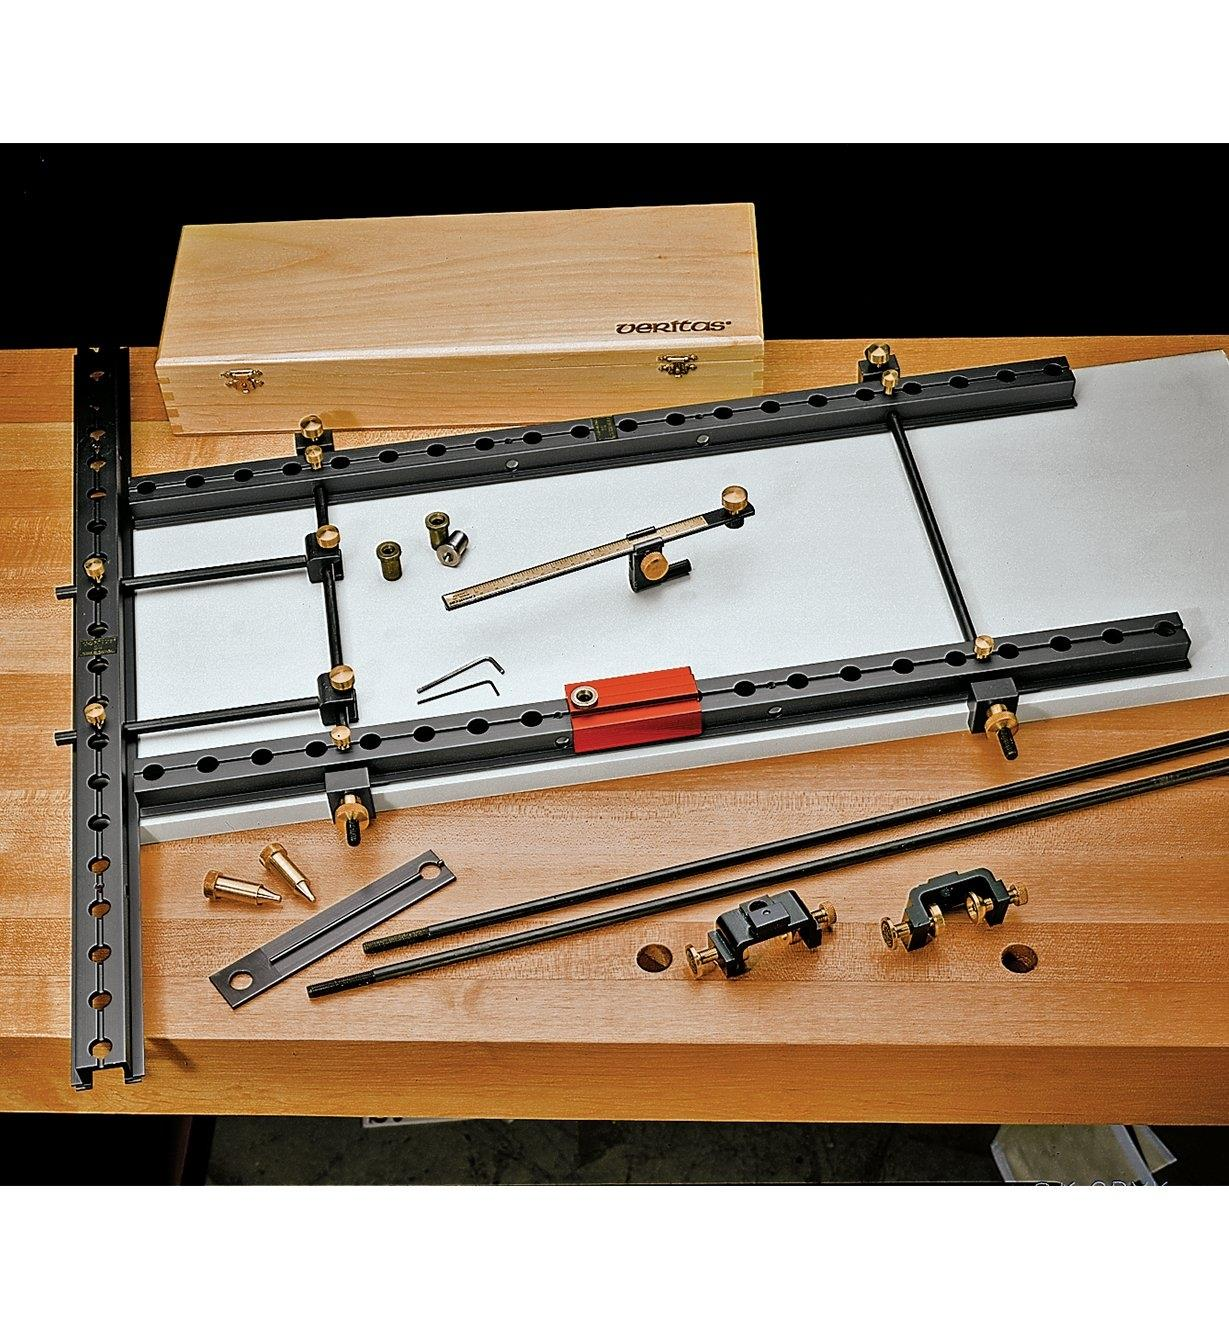 Deluxe System components displayed on a workbench, with rails clamped onto a panel